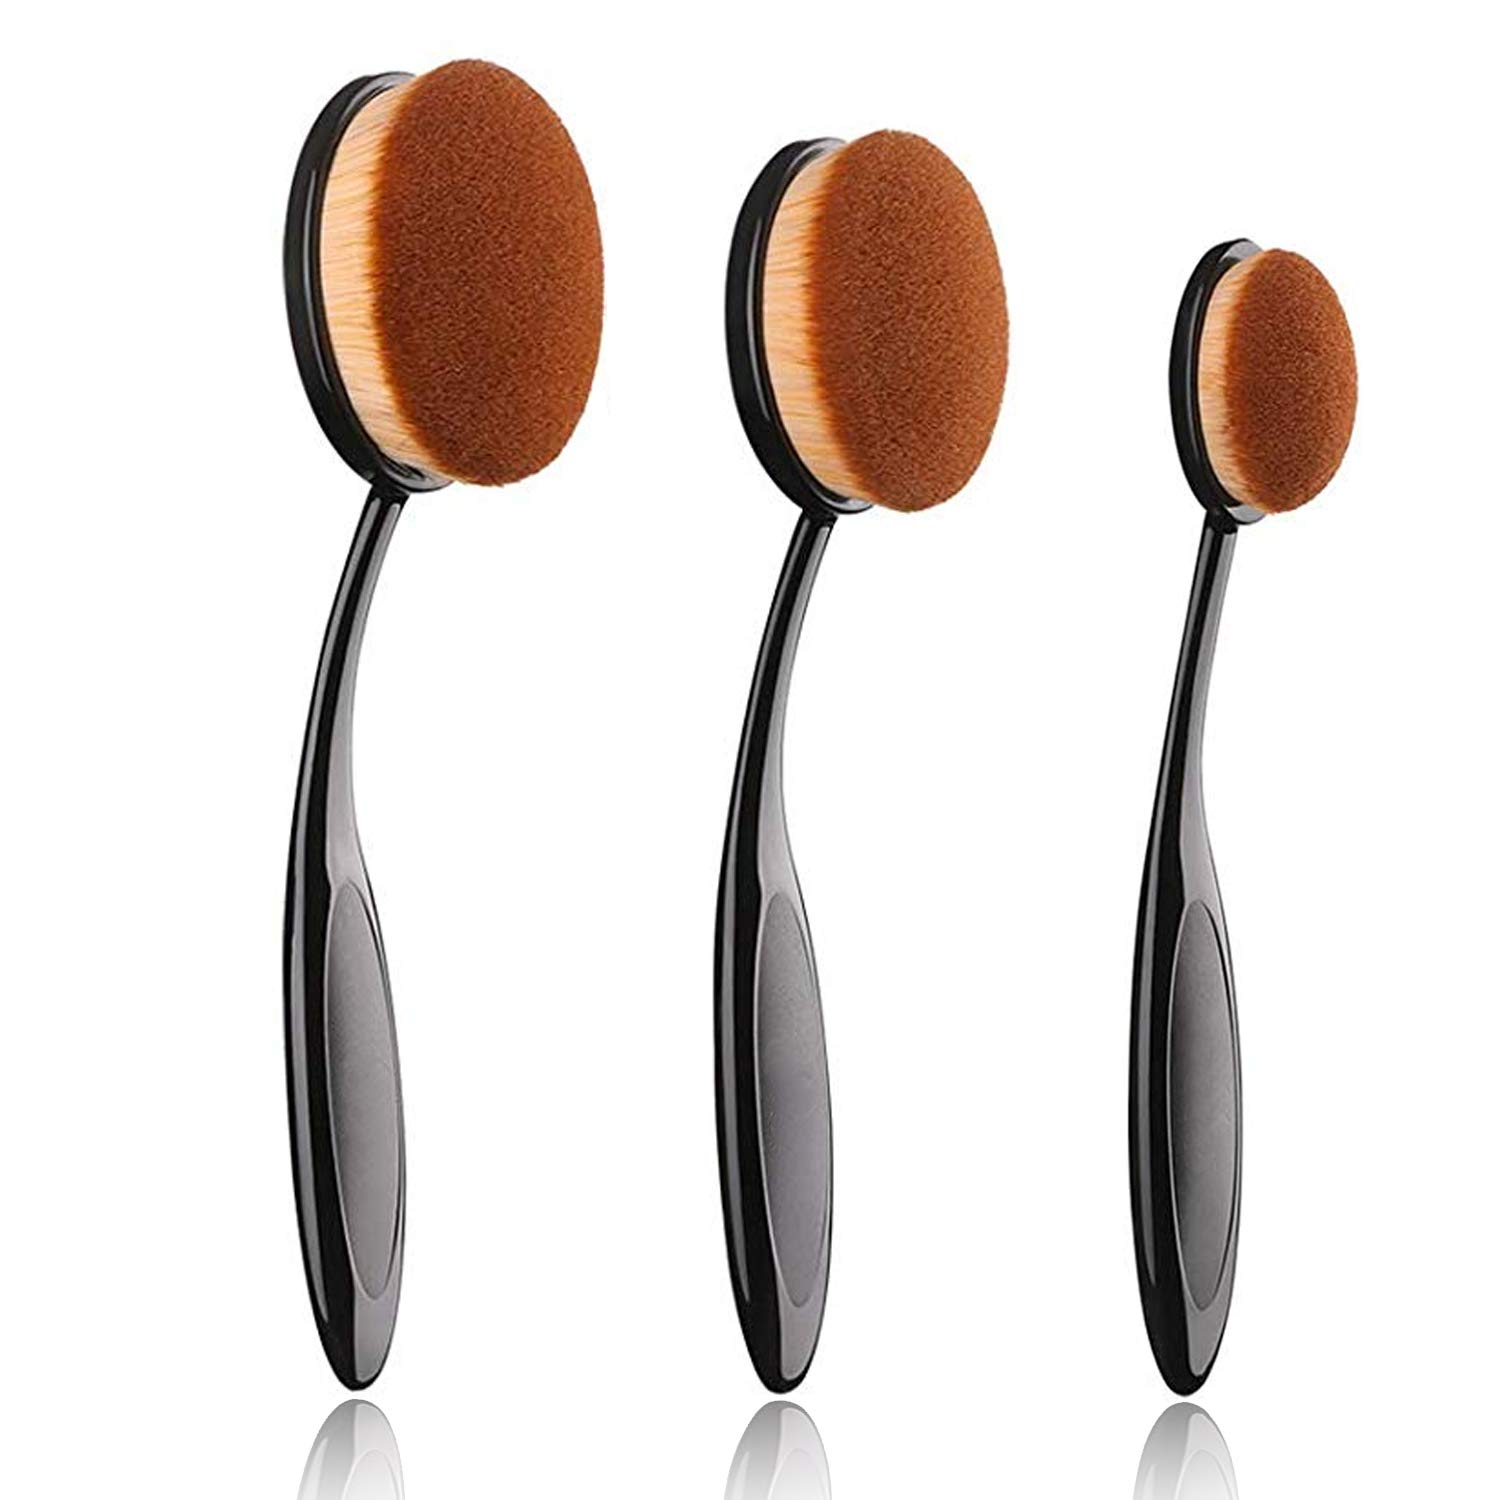 JOSALINAS Oval Makeup Brush Set Upgraded 3pcs Fast Flawless Application Toothbrush Foundation Concealer Blusher Liquid Cream Powder Cosmetic Blending Tools